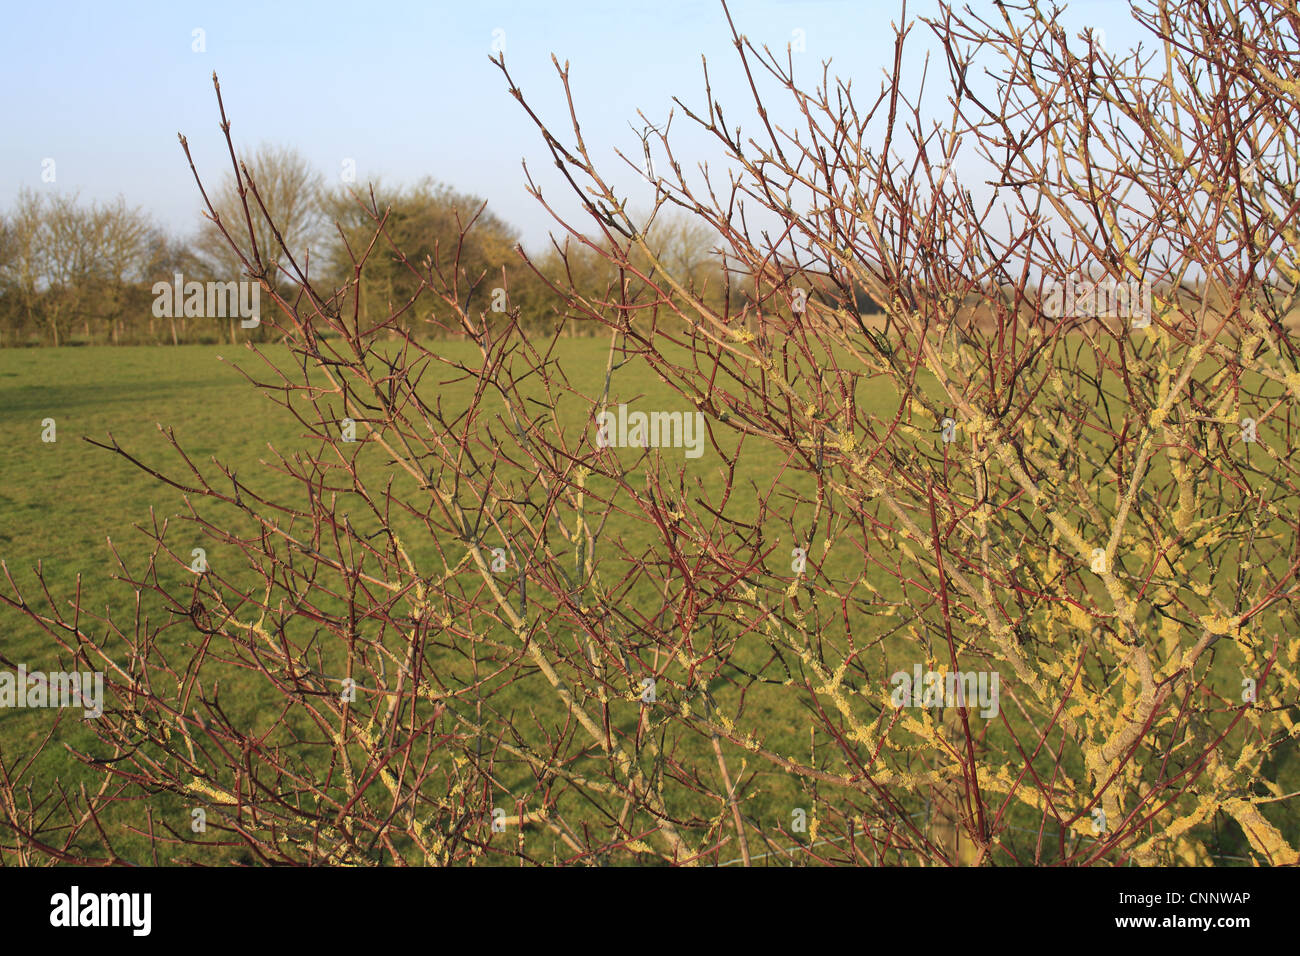 Common Dogwood (Cornus sanguinea) bare red stems, growing in hedgerow beside pasture, Bacton, Suffolk, England, - Stock Image